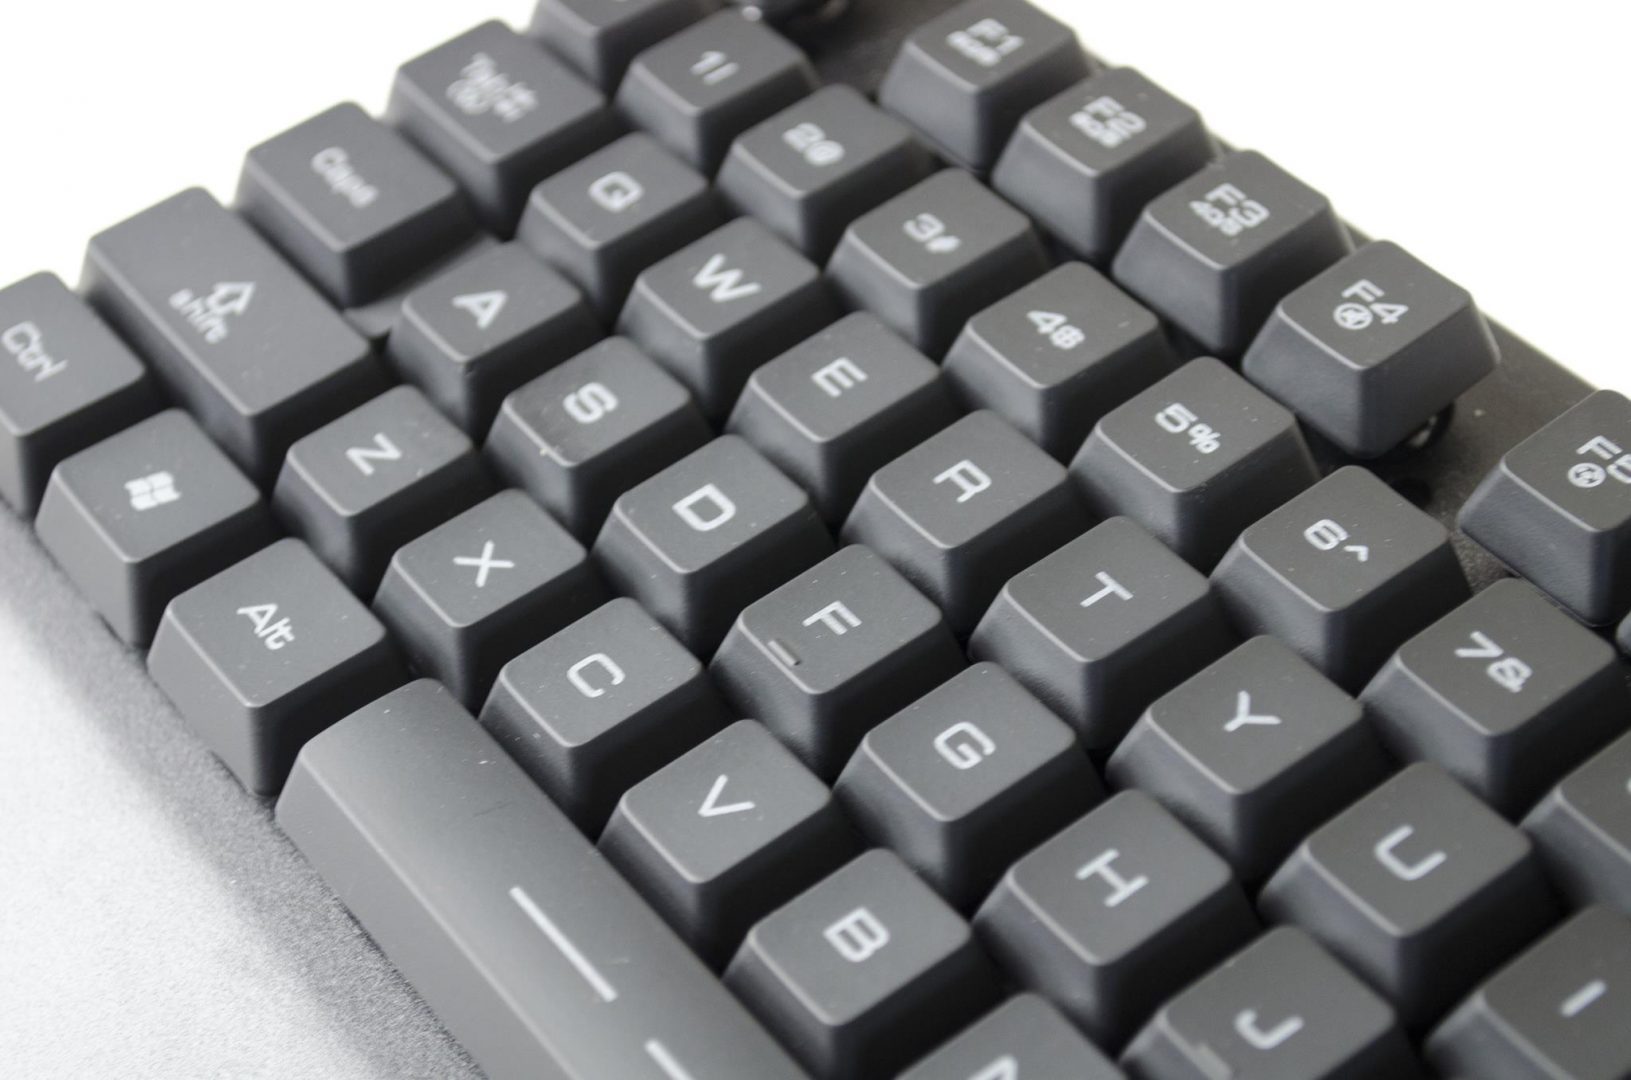 x2 mirage gaming keyboard review_5